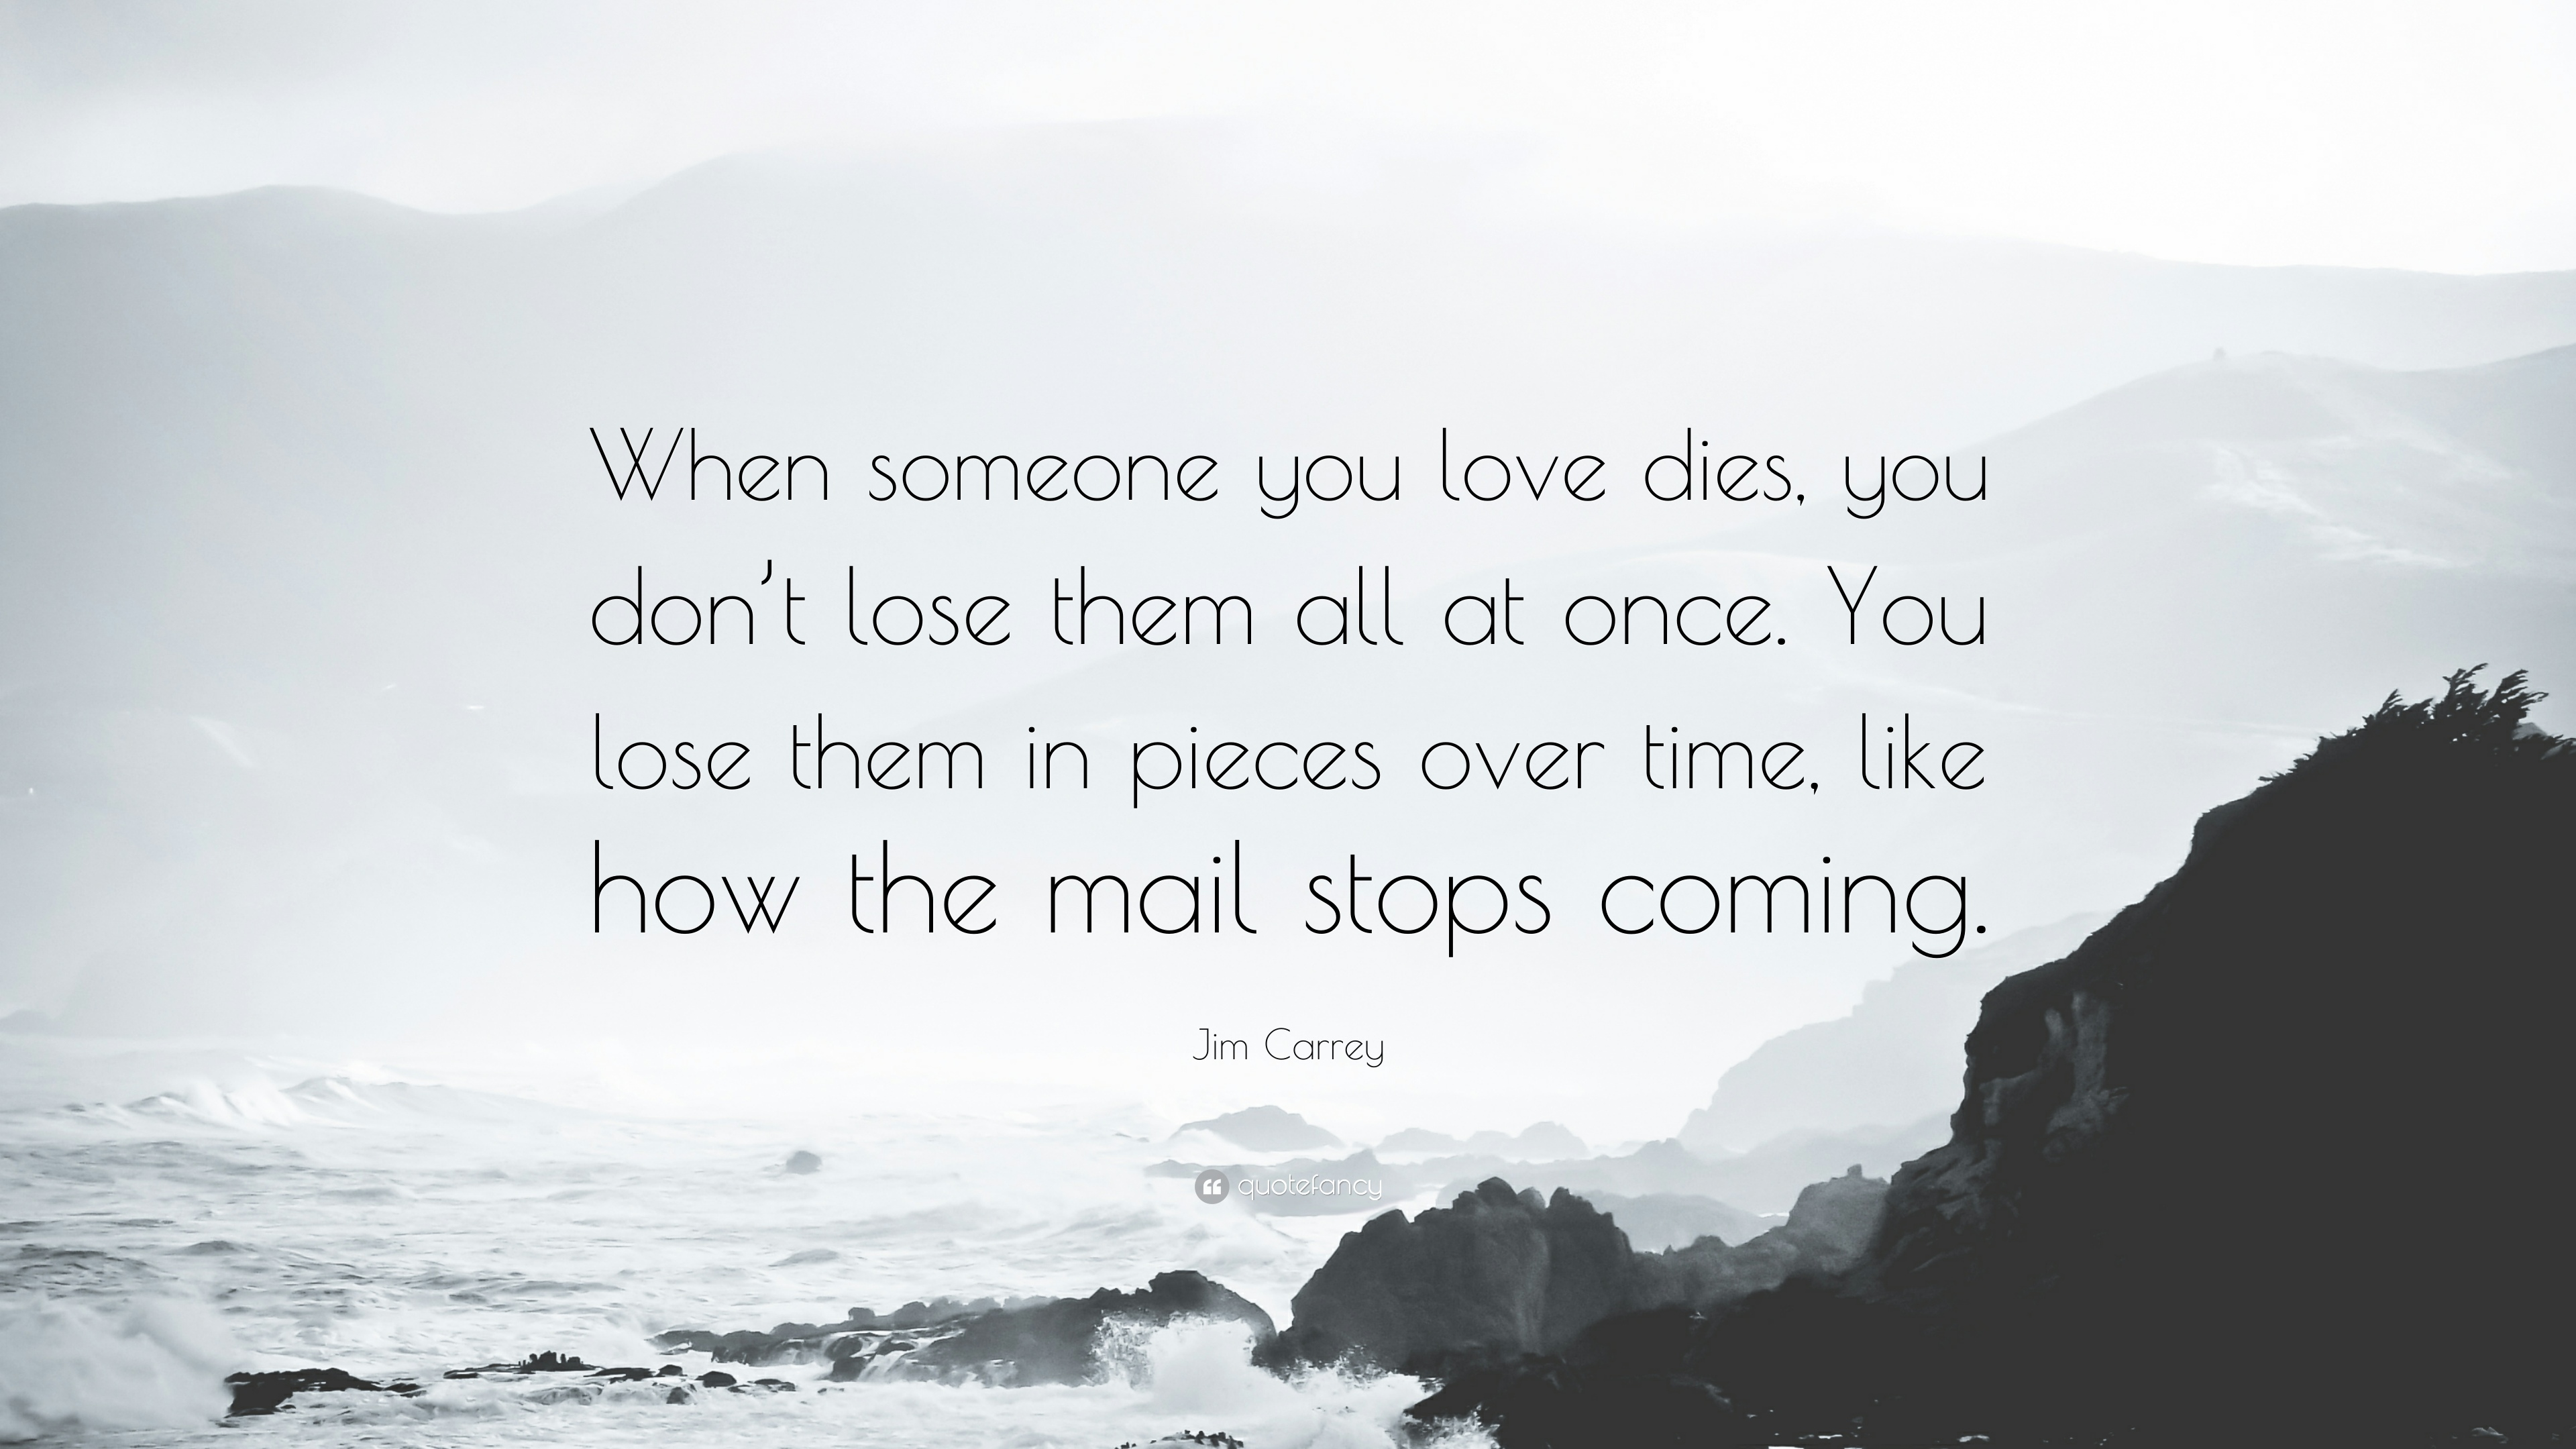 Jim Carrey Quote When Someone You Love Dies You Dont Lose Them